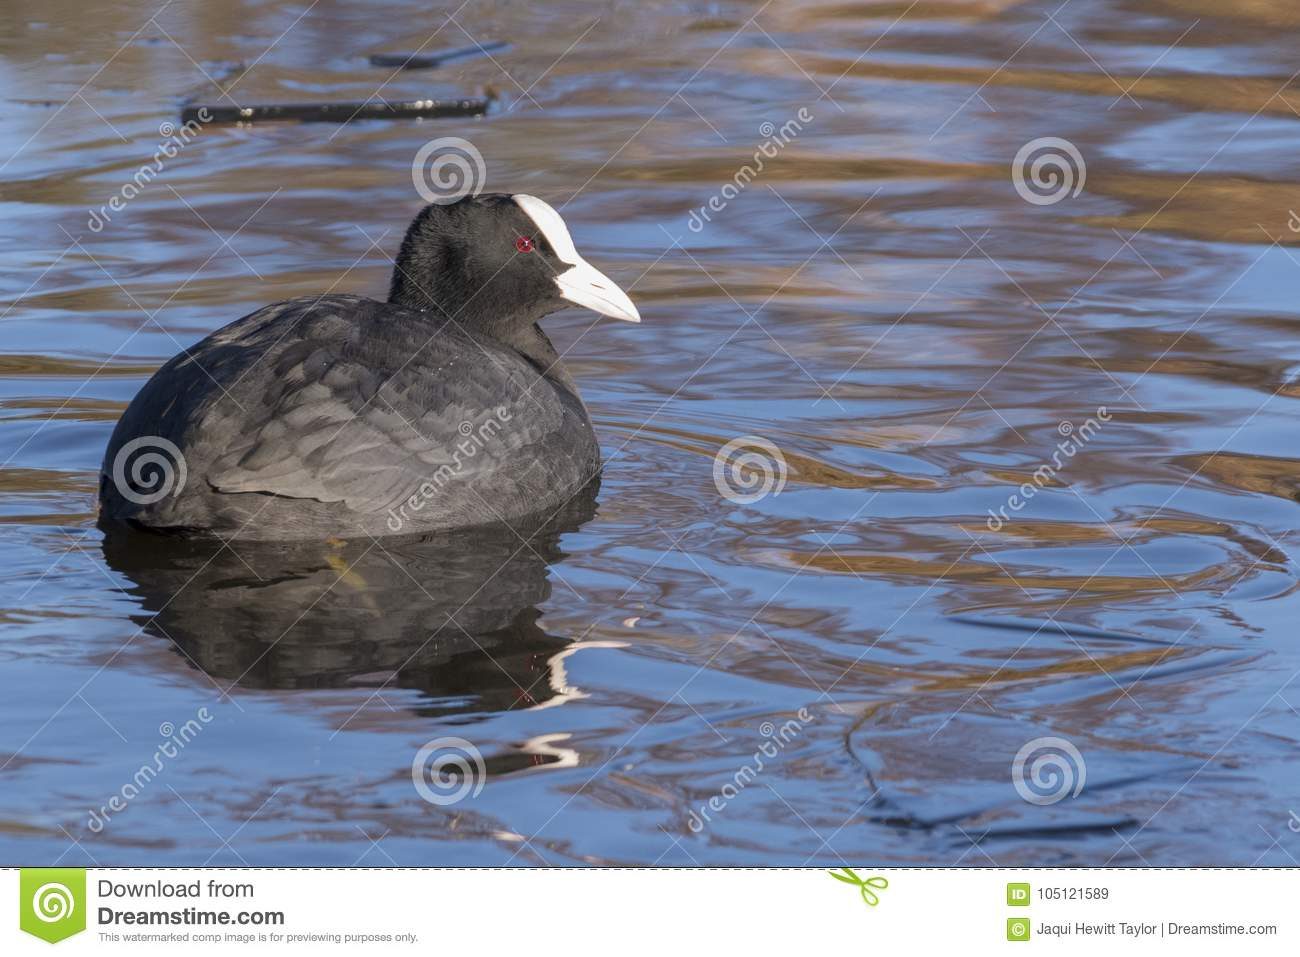 Download A Coot Swimming In Icy Water : Southampton Common Stock Image - Image of freezing, swimming: 105121589